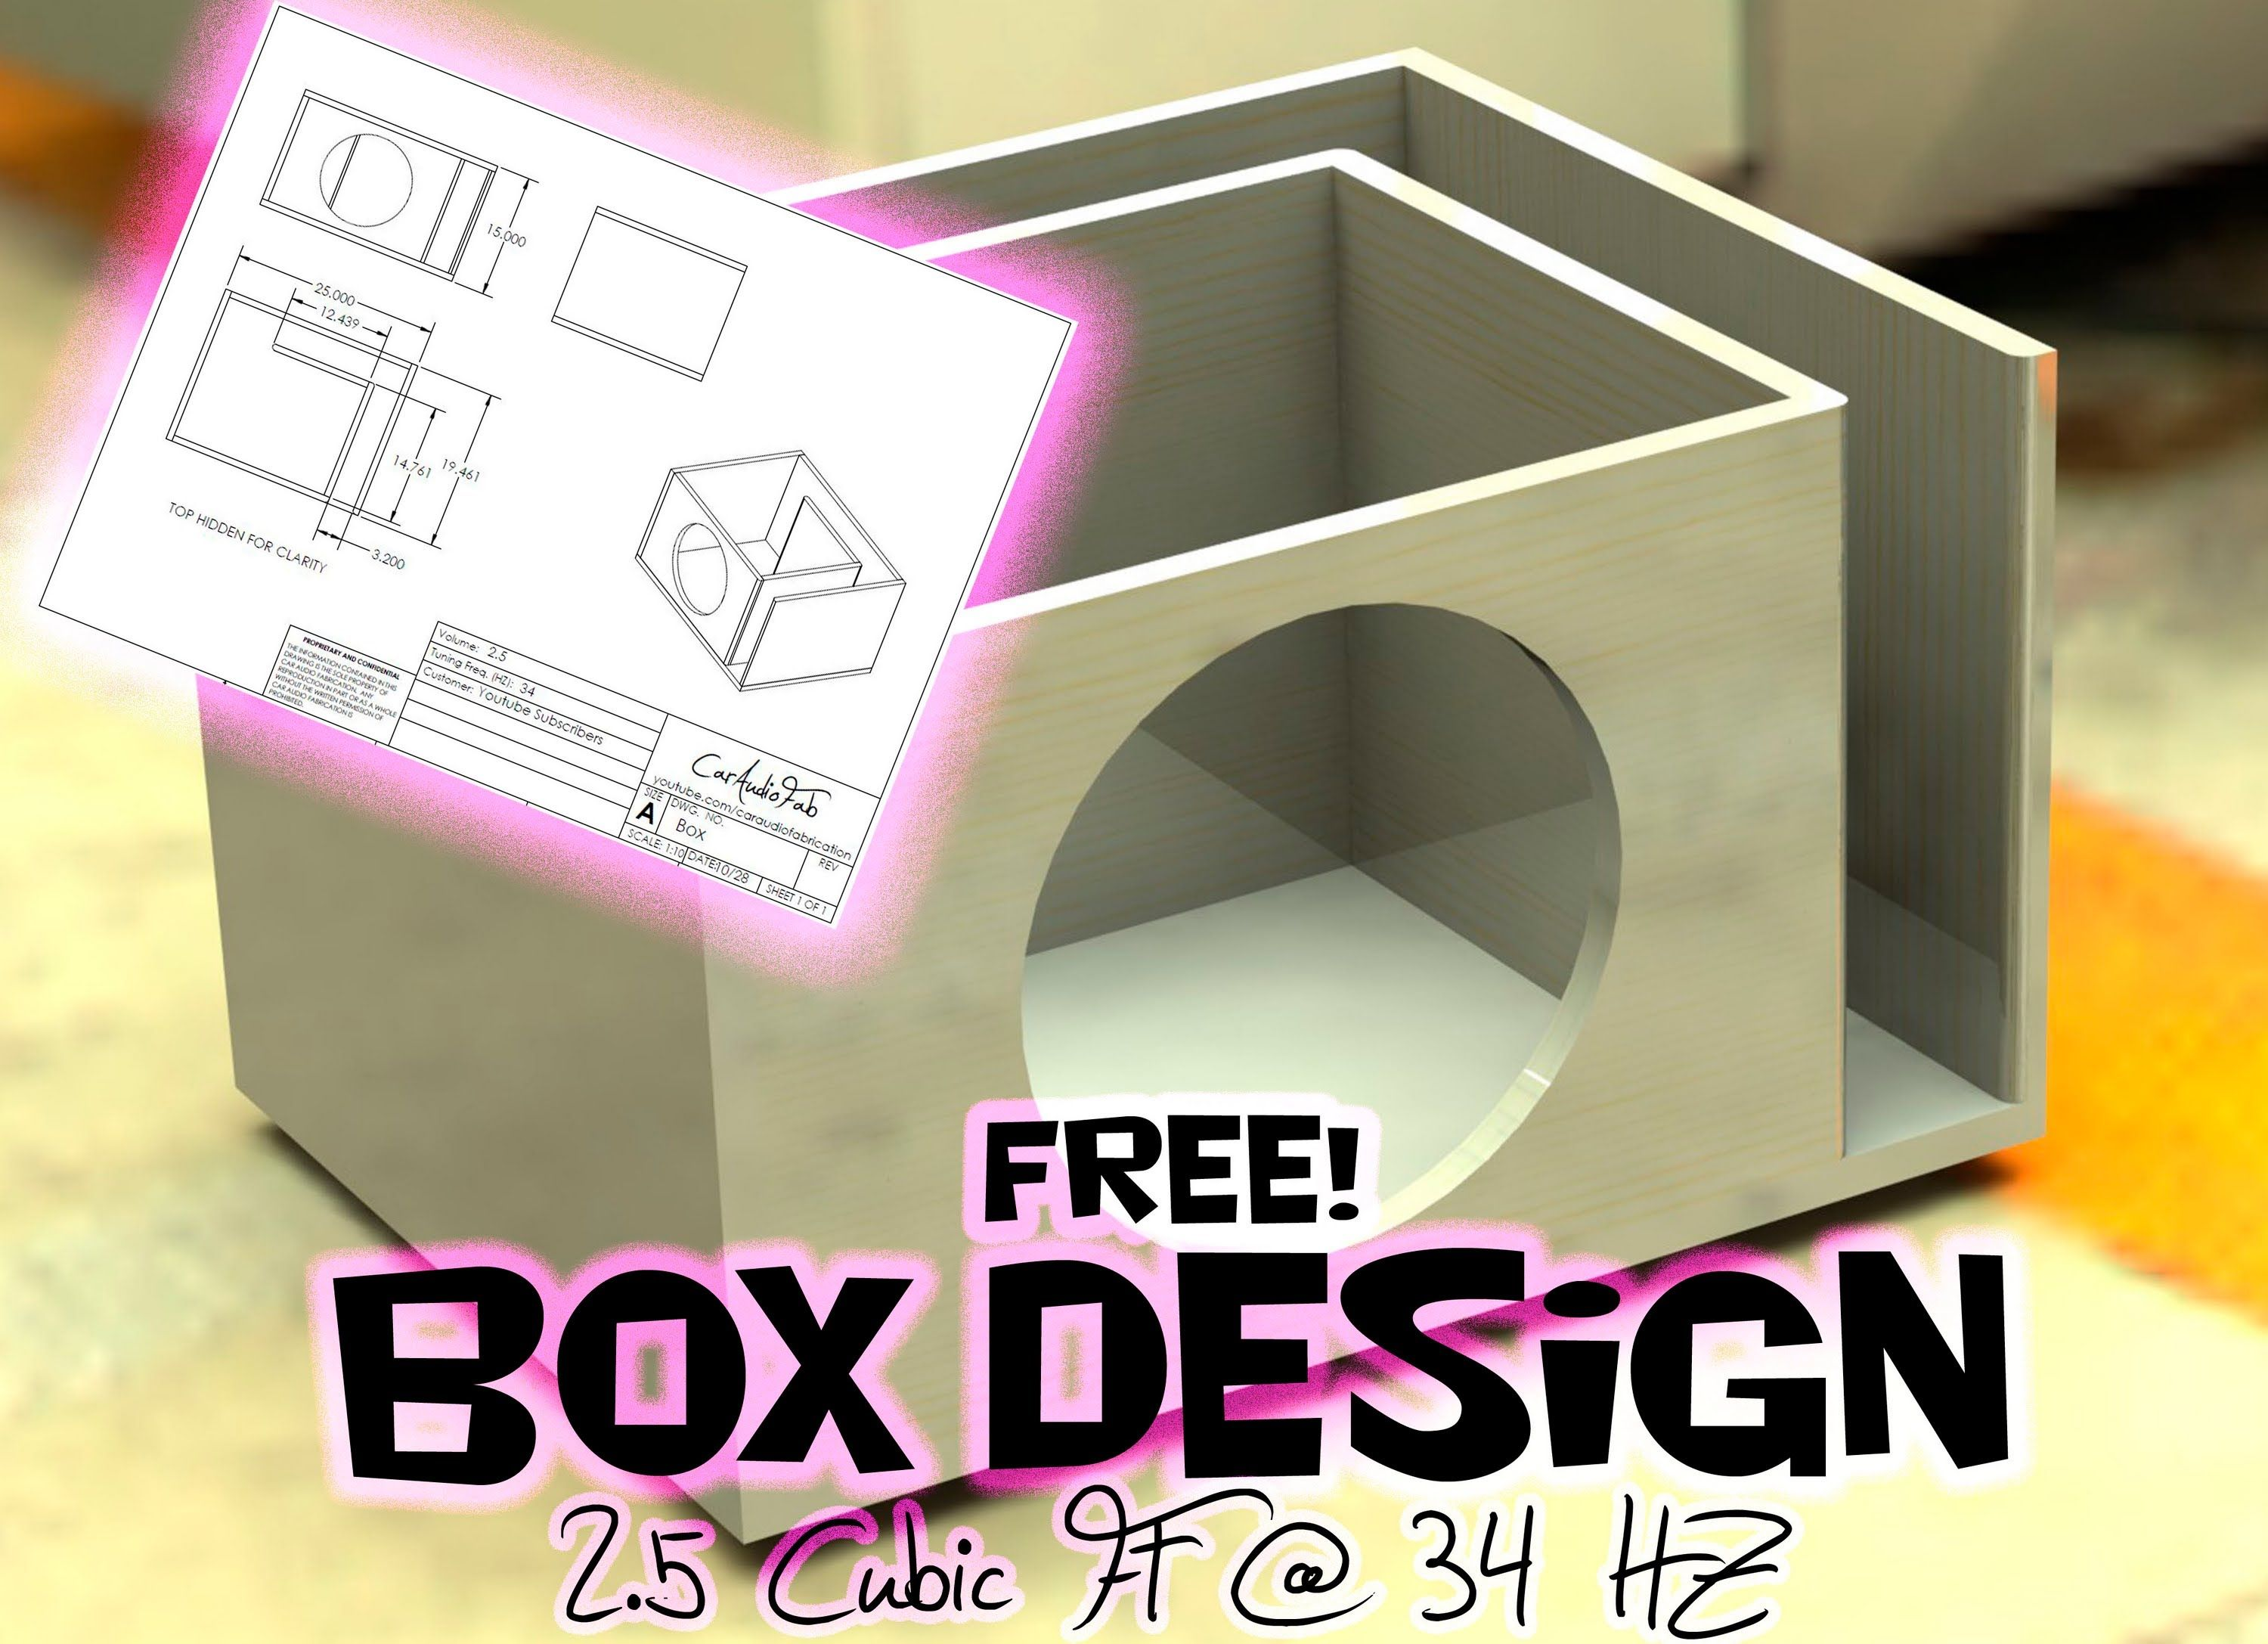 Free Sub Box Design 12 Quot Sub 2 5 Cubic Ft At 34 Hz Youtube Subwoofer Box Design Sub Box Design Diy Subwoofer Box